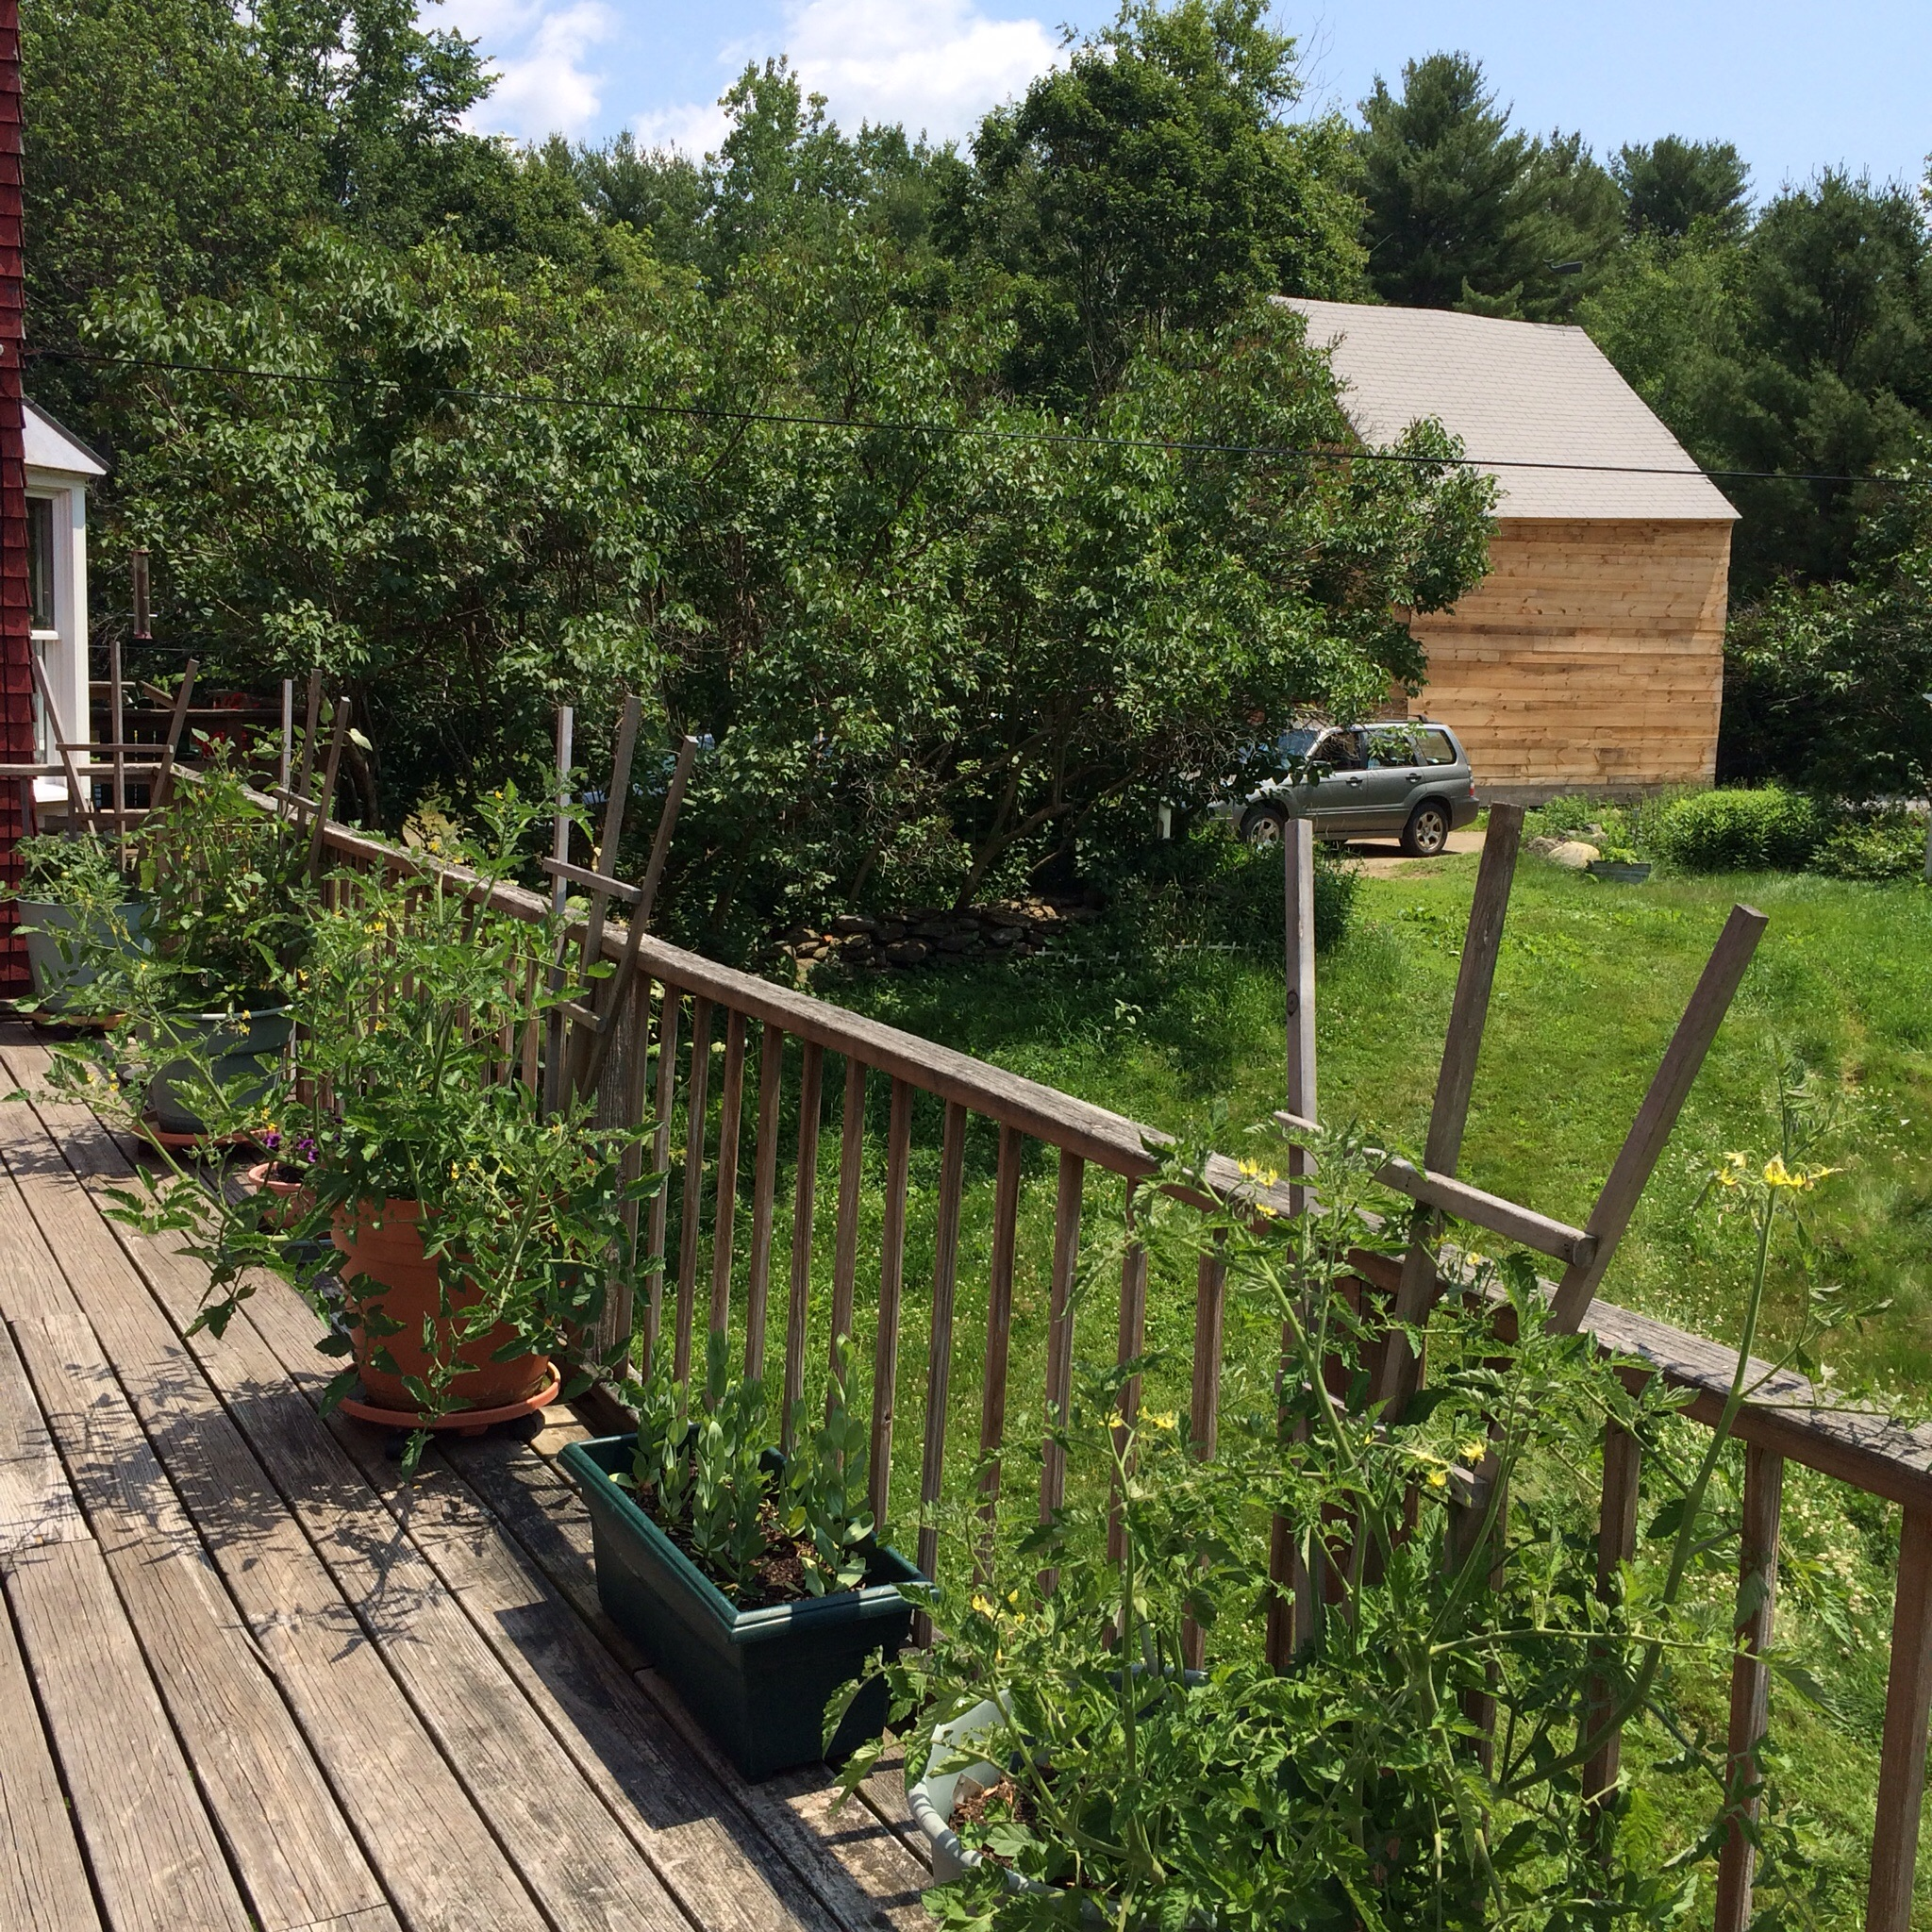 My mother's cherry tomato jungle on their deck. My parents have the greenest thumbs of anyone I know.